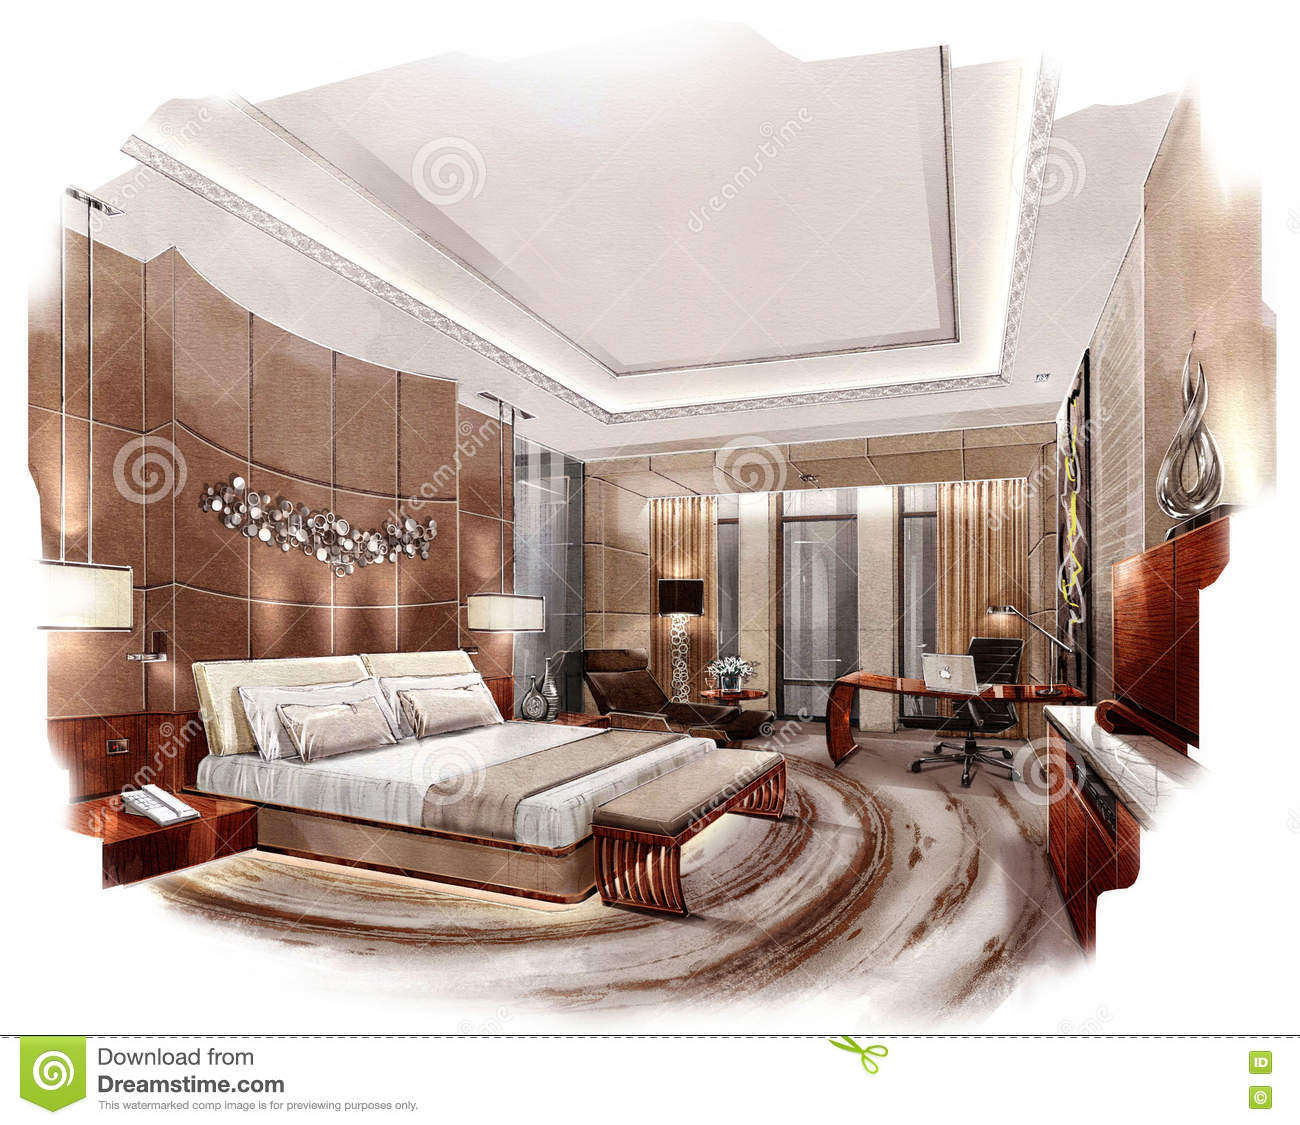 Stunning Chambre En Perspective Lineaire Images - Matkin.info ...